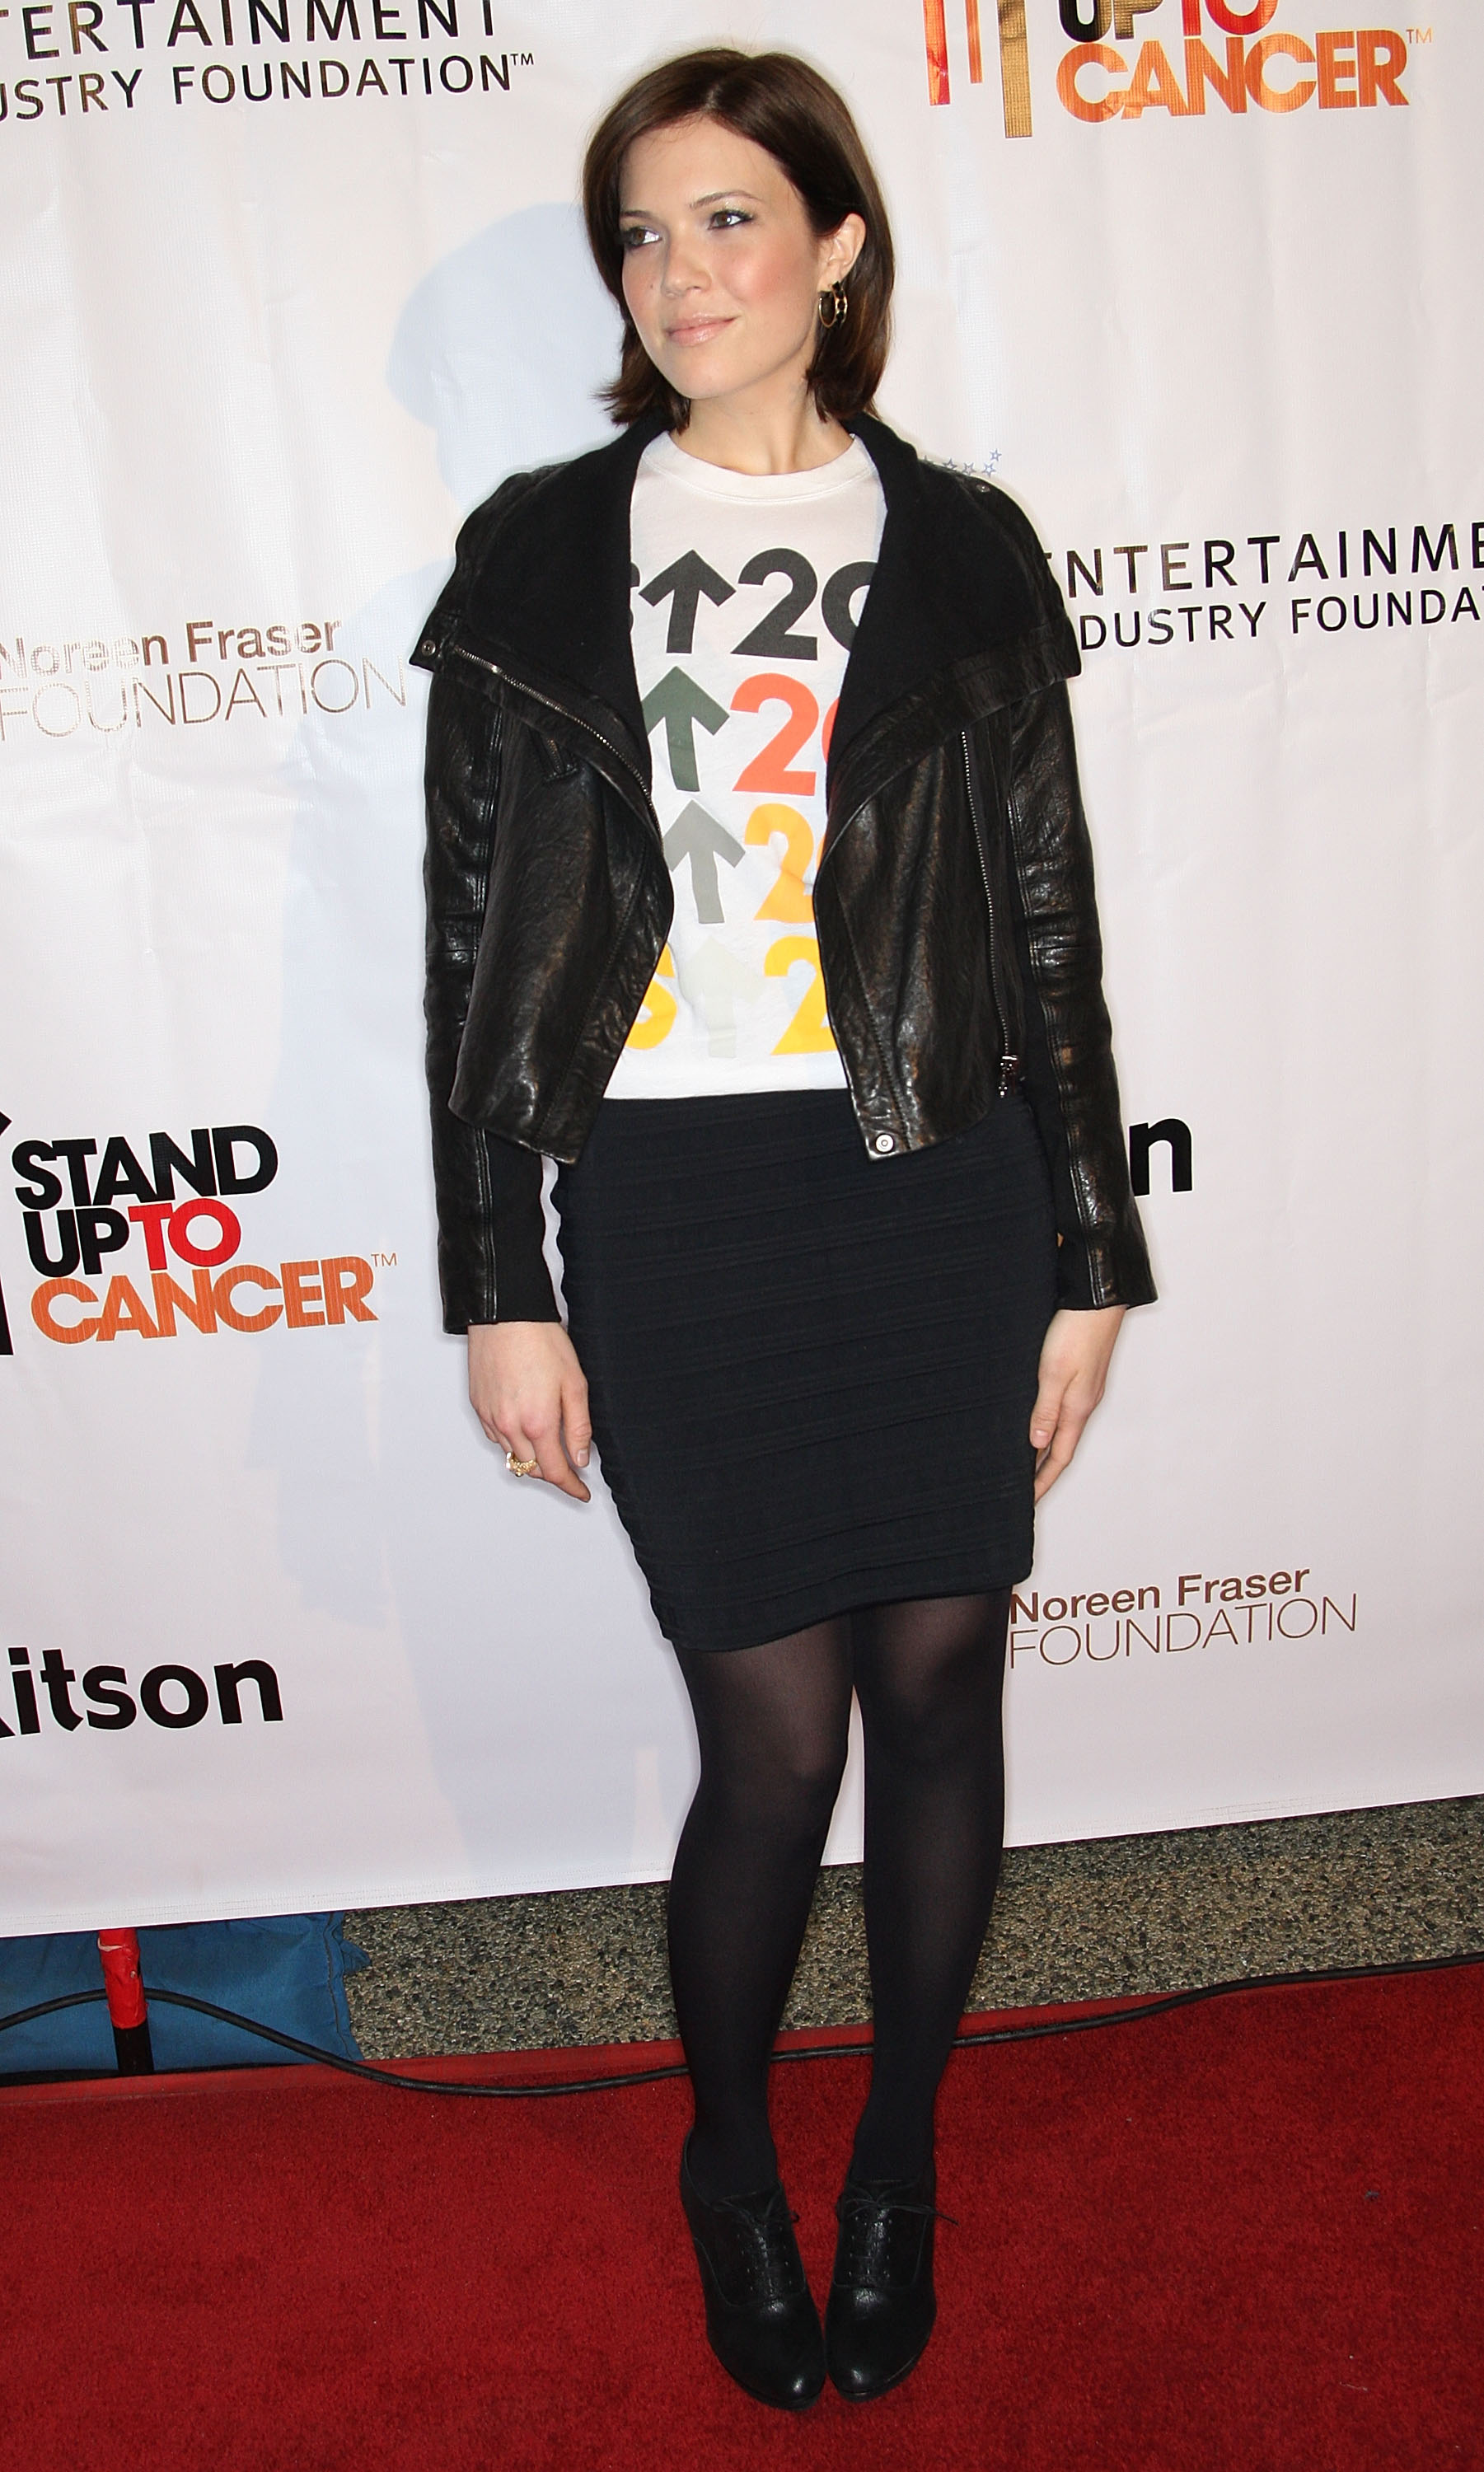 97226_Celebutopia-Mandy_Moore-SU2C_merchandise_collection_launch-01_122_118lo.jpg